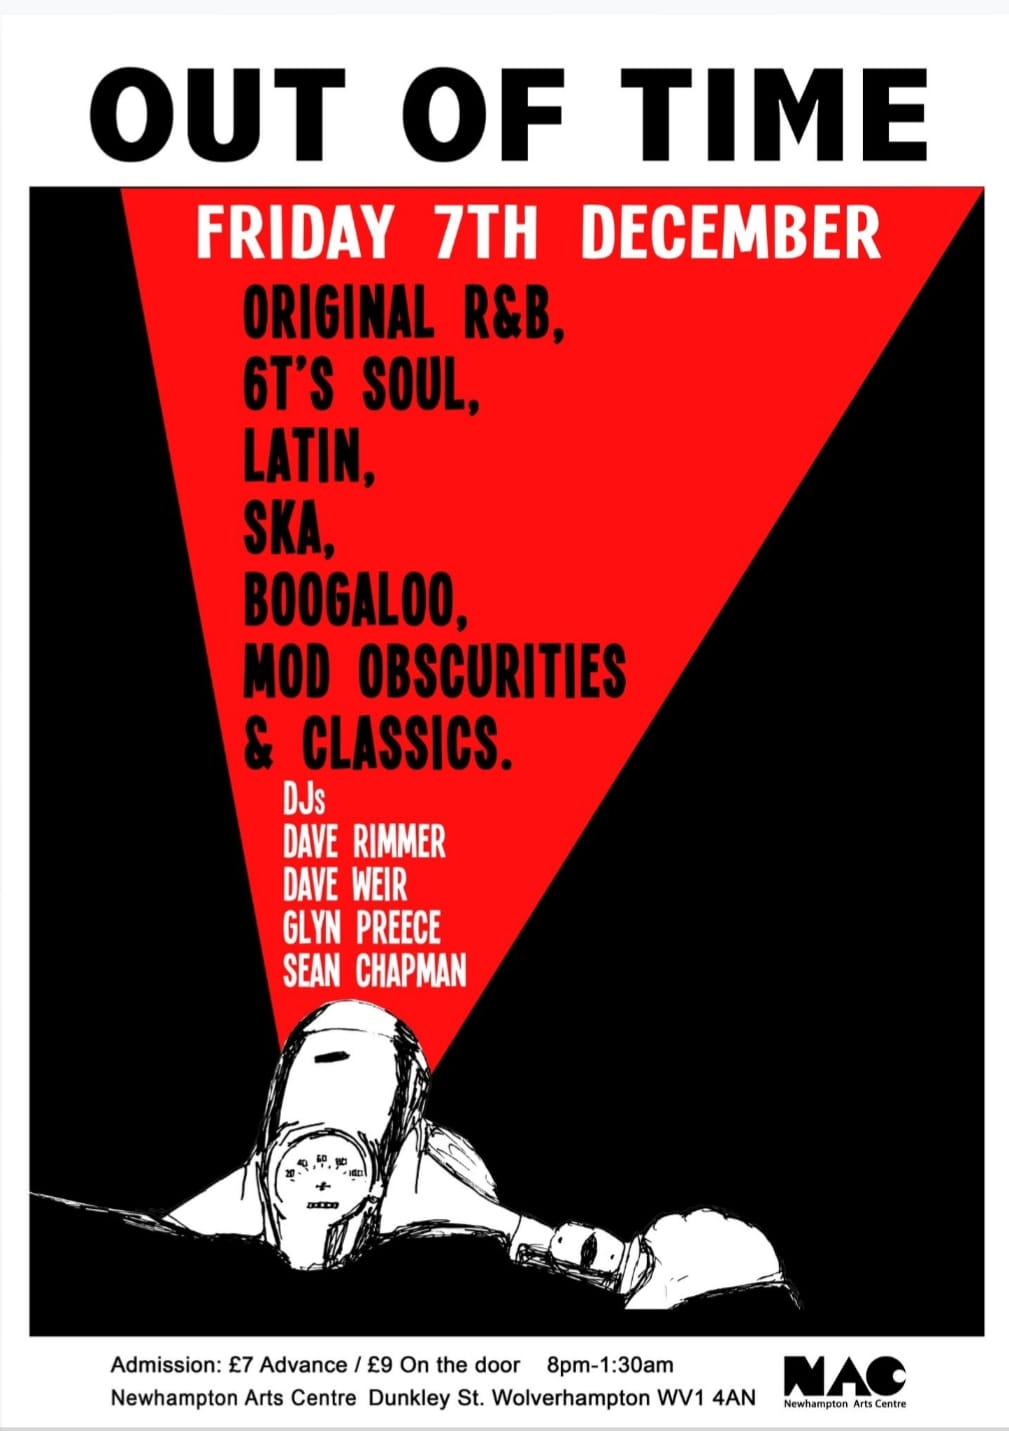 Out Of Time Christmas Party - Friday 7th December 2018. DJs Dave Rimmer, Dave Weir, Glyn Preece and Sean Chapman. Playing 60s R&B, 60s Soul, Latin Soul, Ska, Booglaoo & Mod classics